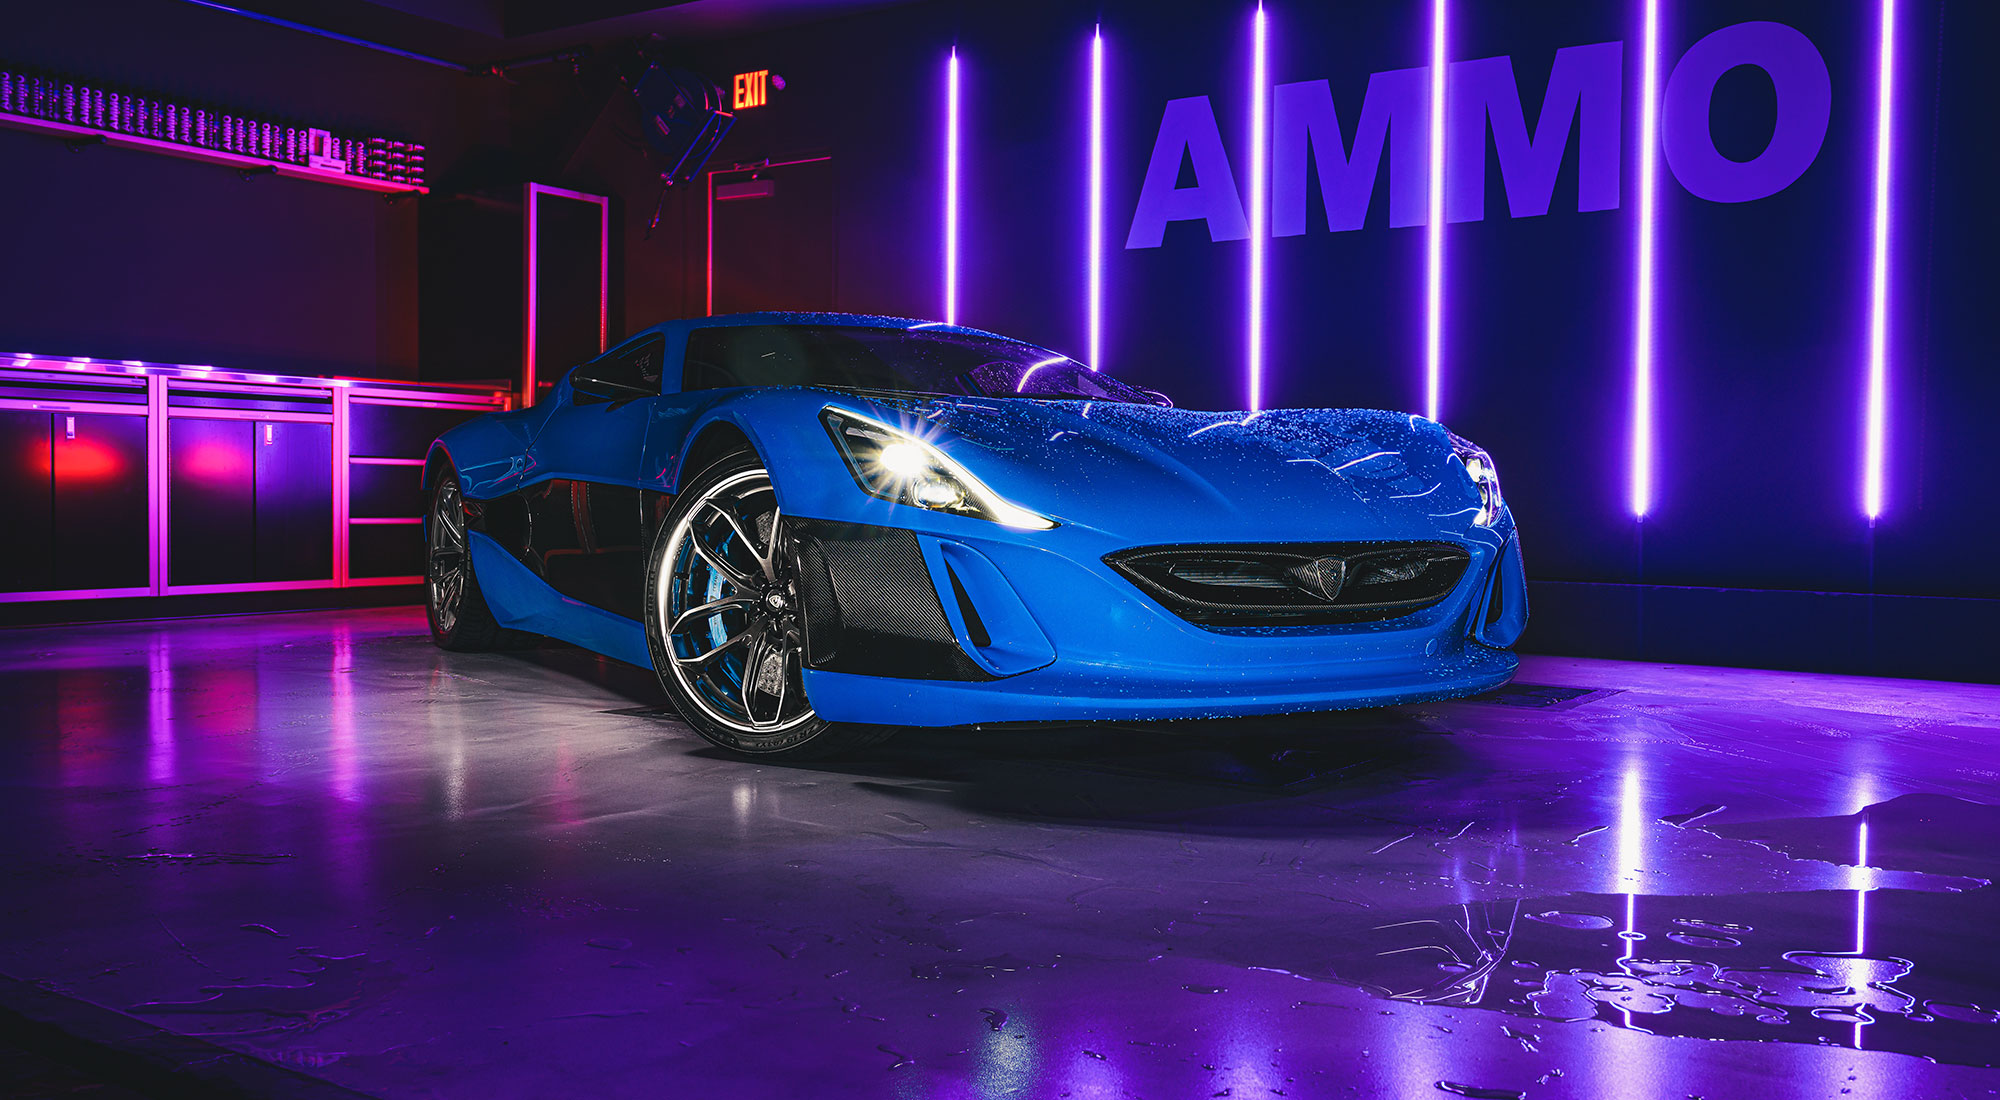 Shooting the Rimac Concept One